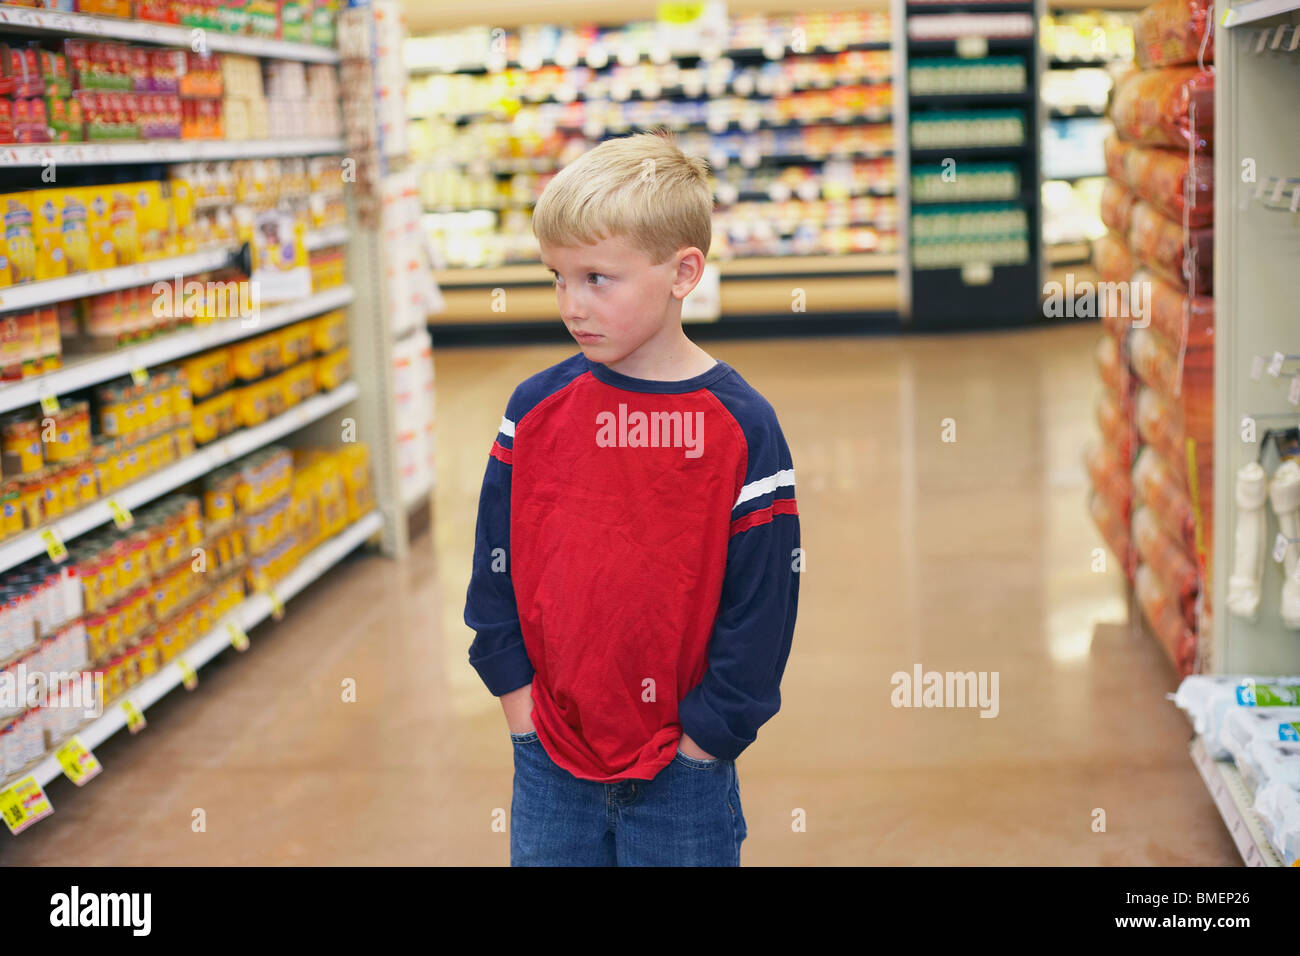 A Boy In A Grocery Store - Stock Image